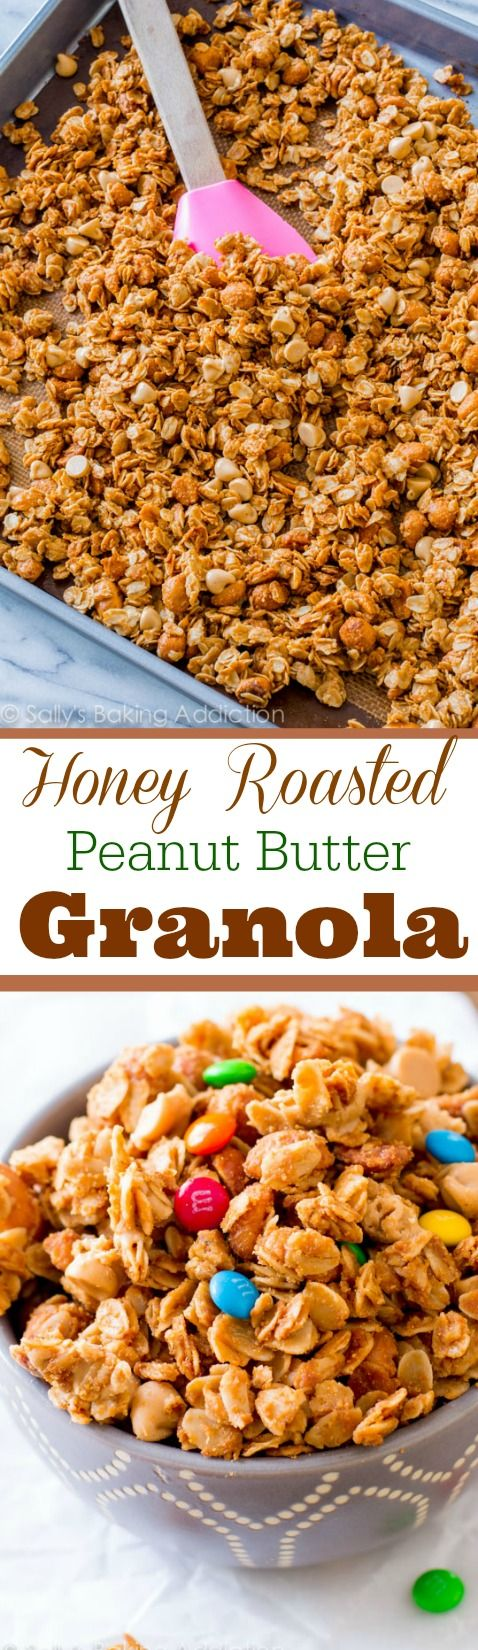 peanut butter and honey, this easy and healthy 7 ingredient granola ...